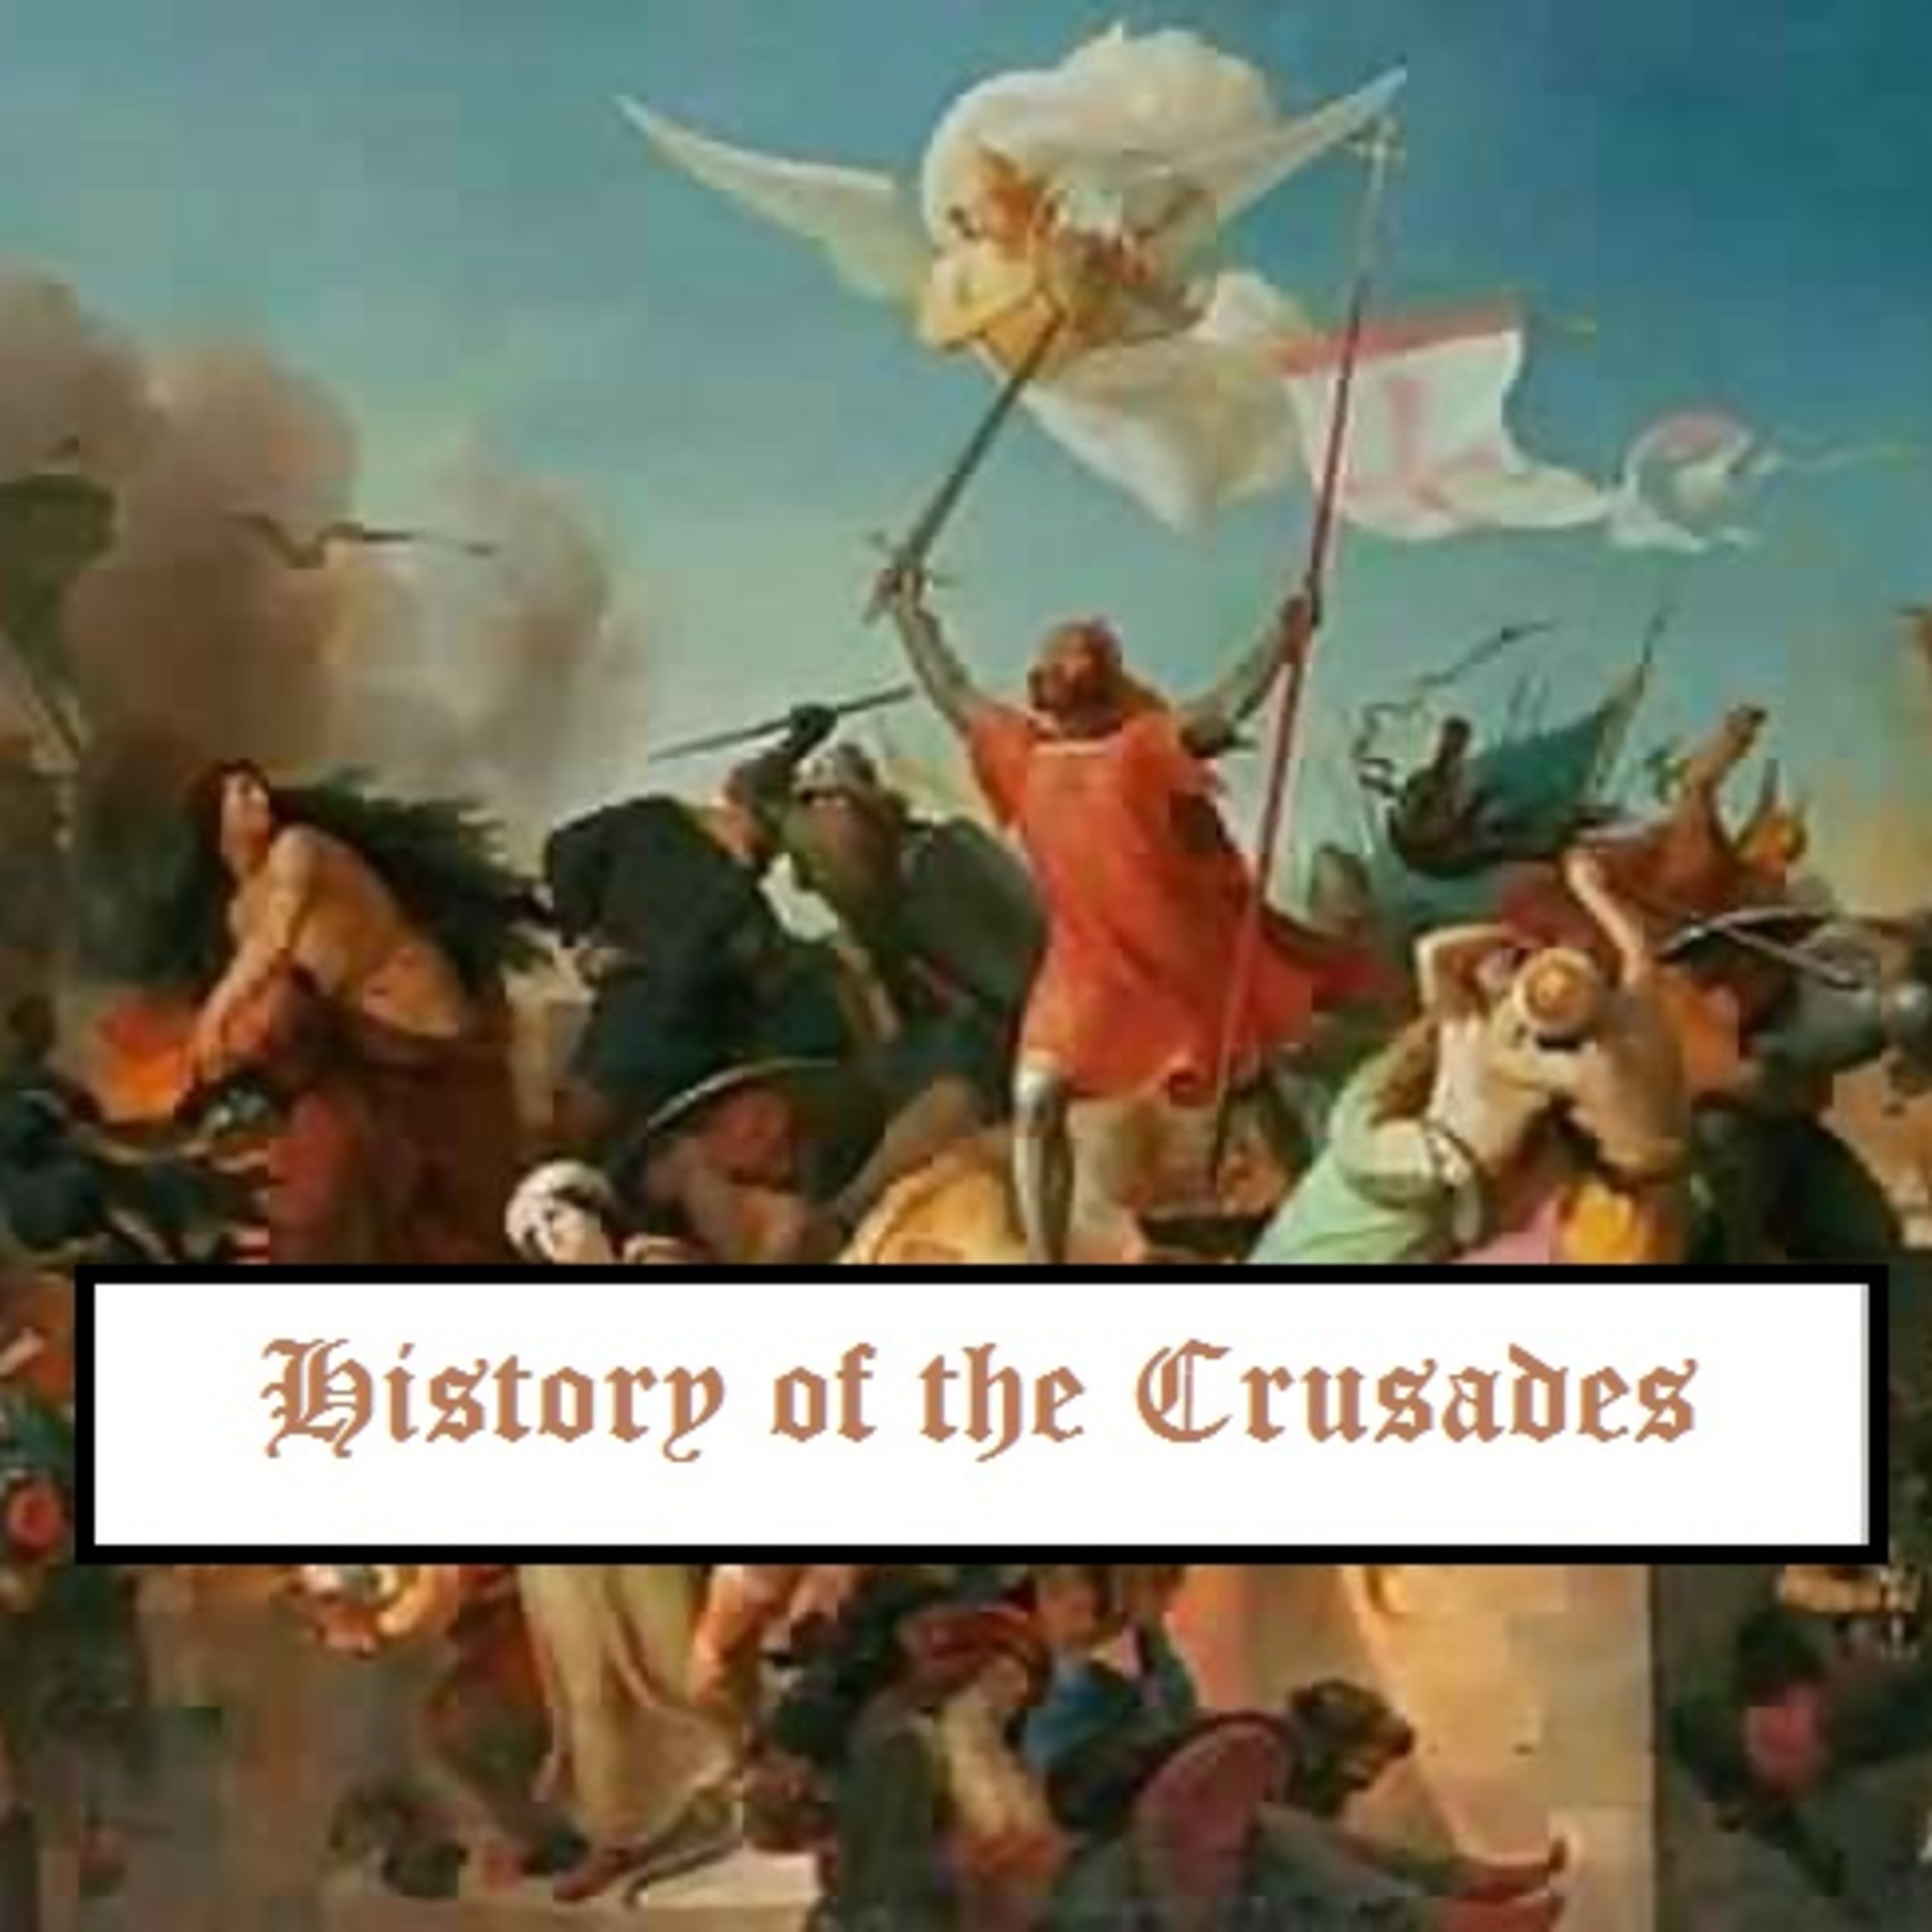 Episode 103 - The Last Crusades